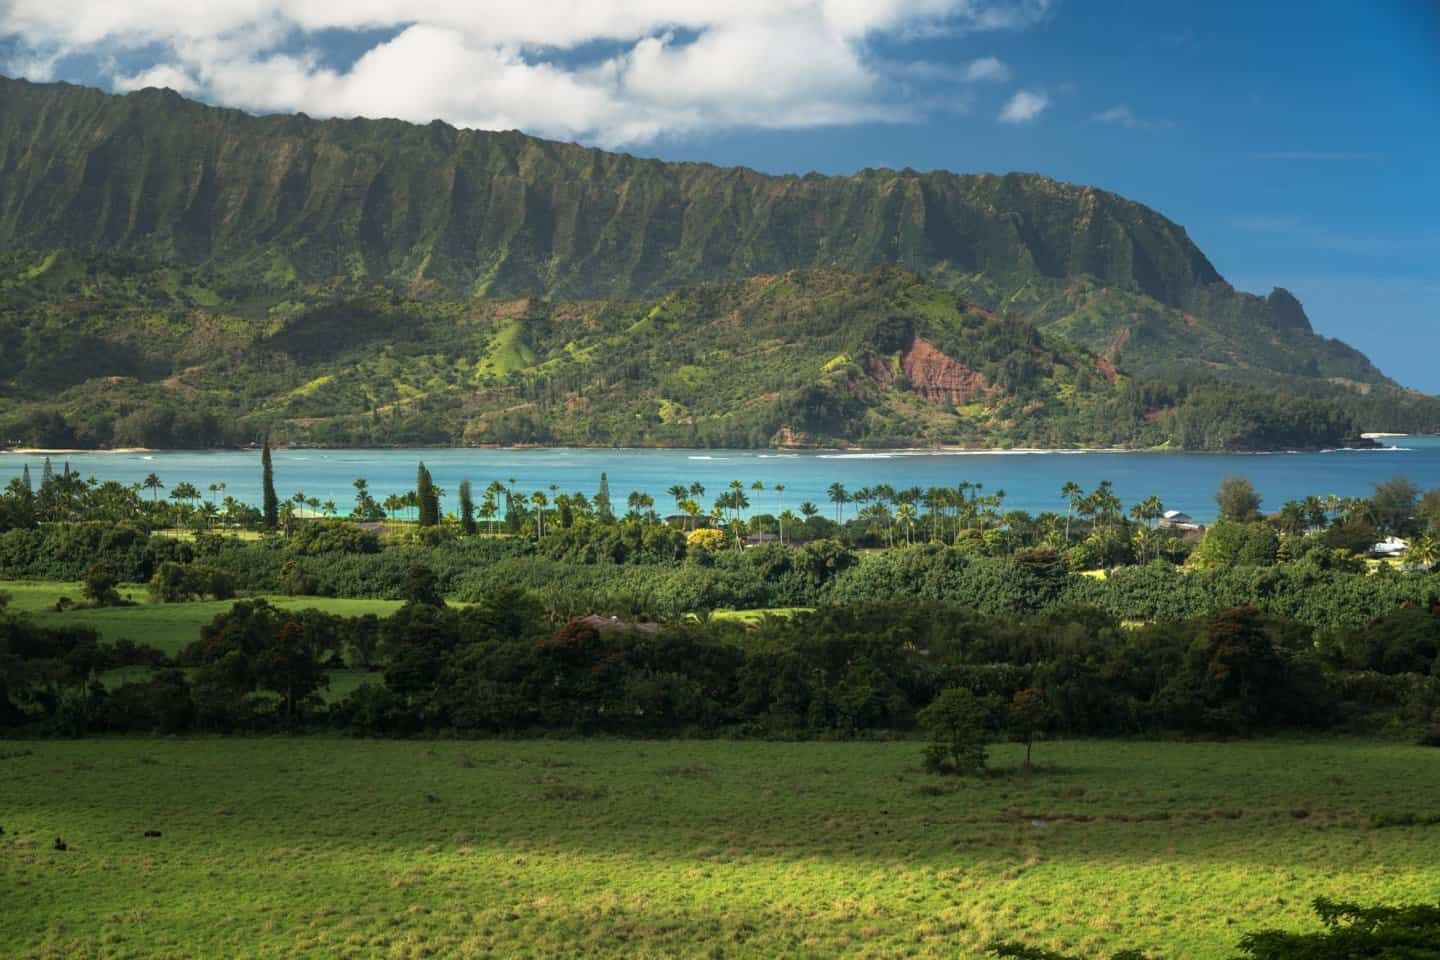 A zoomed in look at Hanalei Bay from the Hanalei Valley lookout.